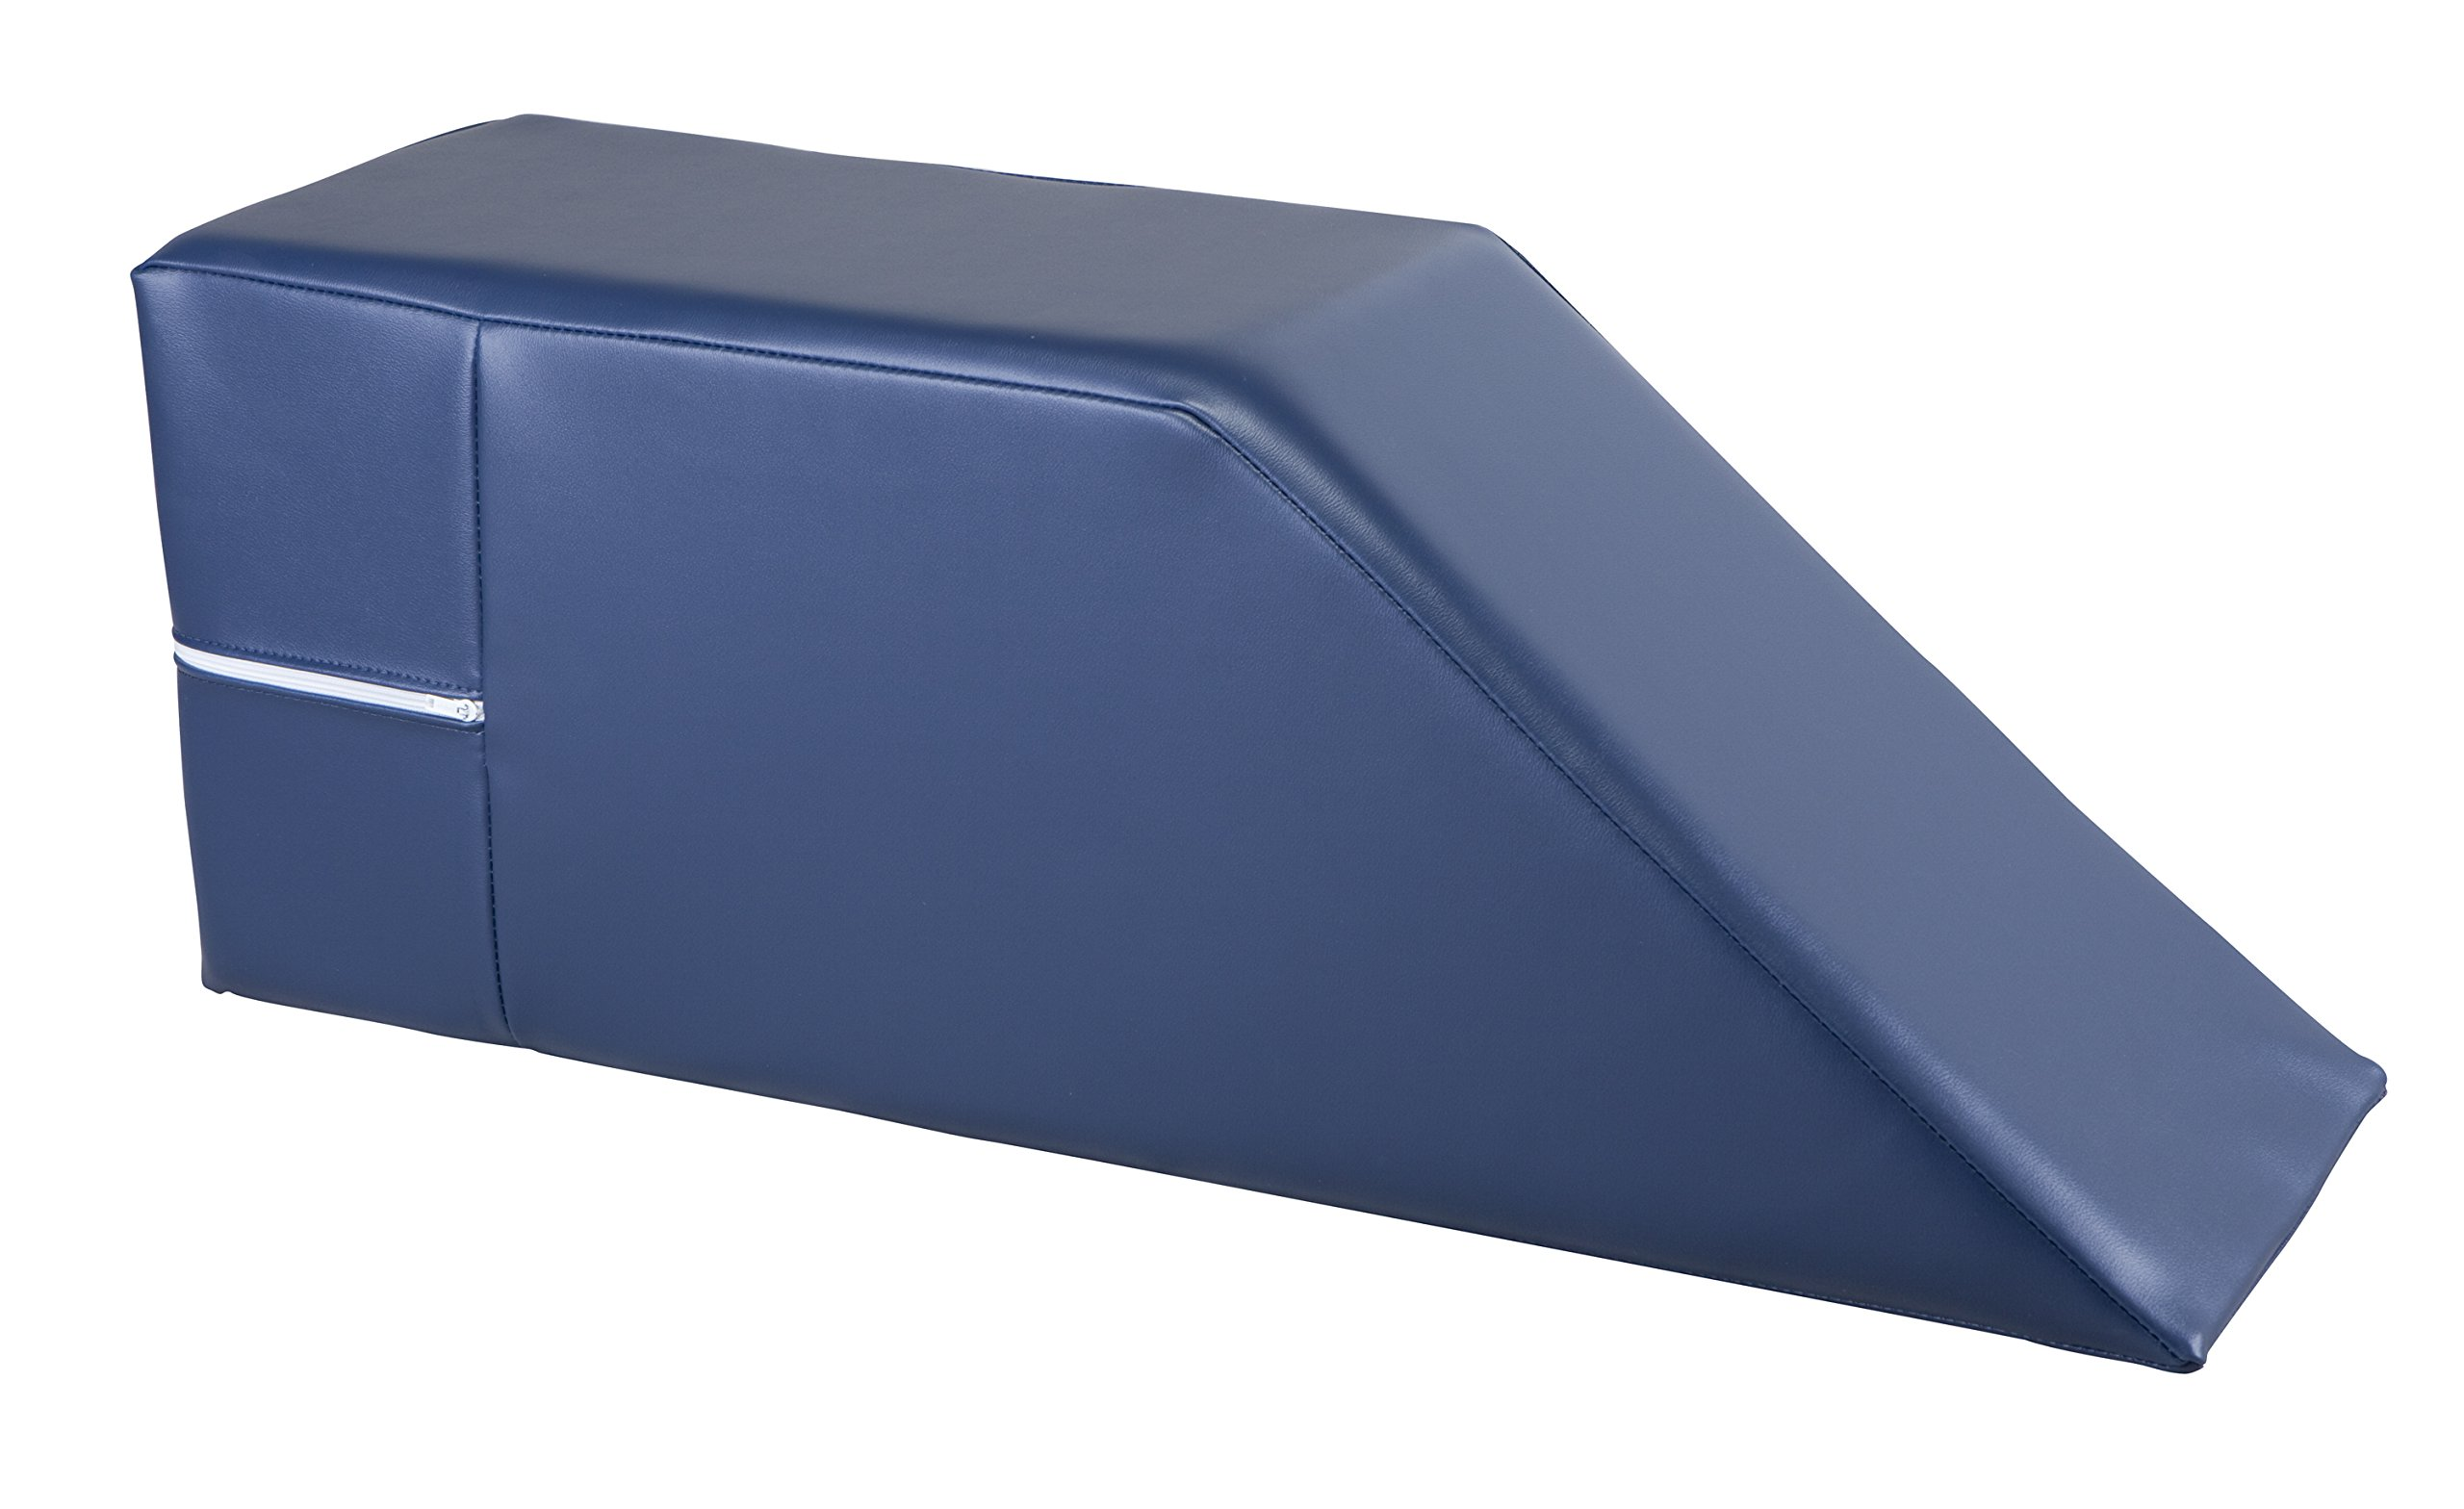 Armedica Vinyl Therapy Bolsters - 10''x32''x12'' Flat Top Wedge - Imperial Blue